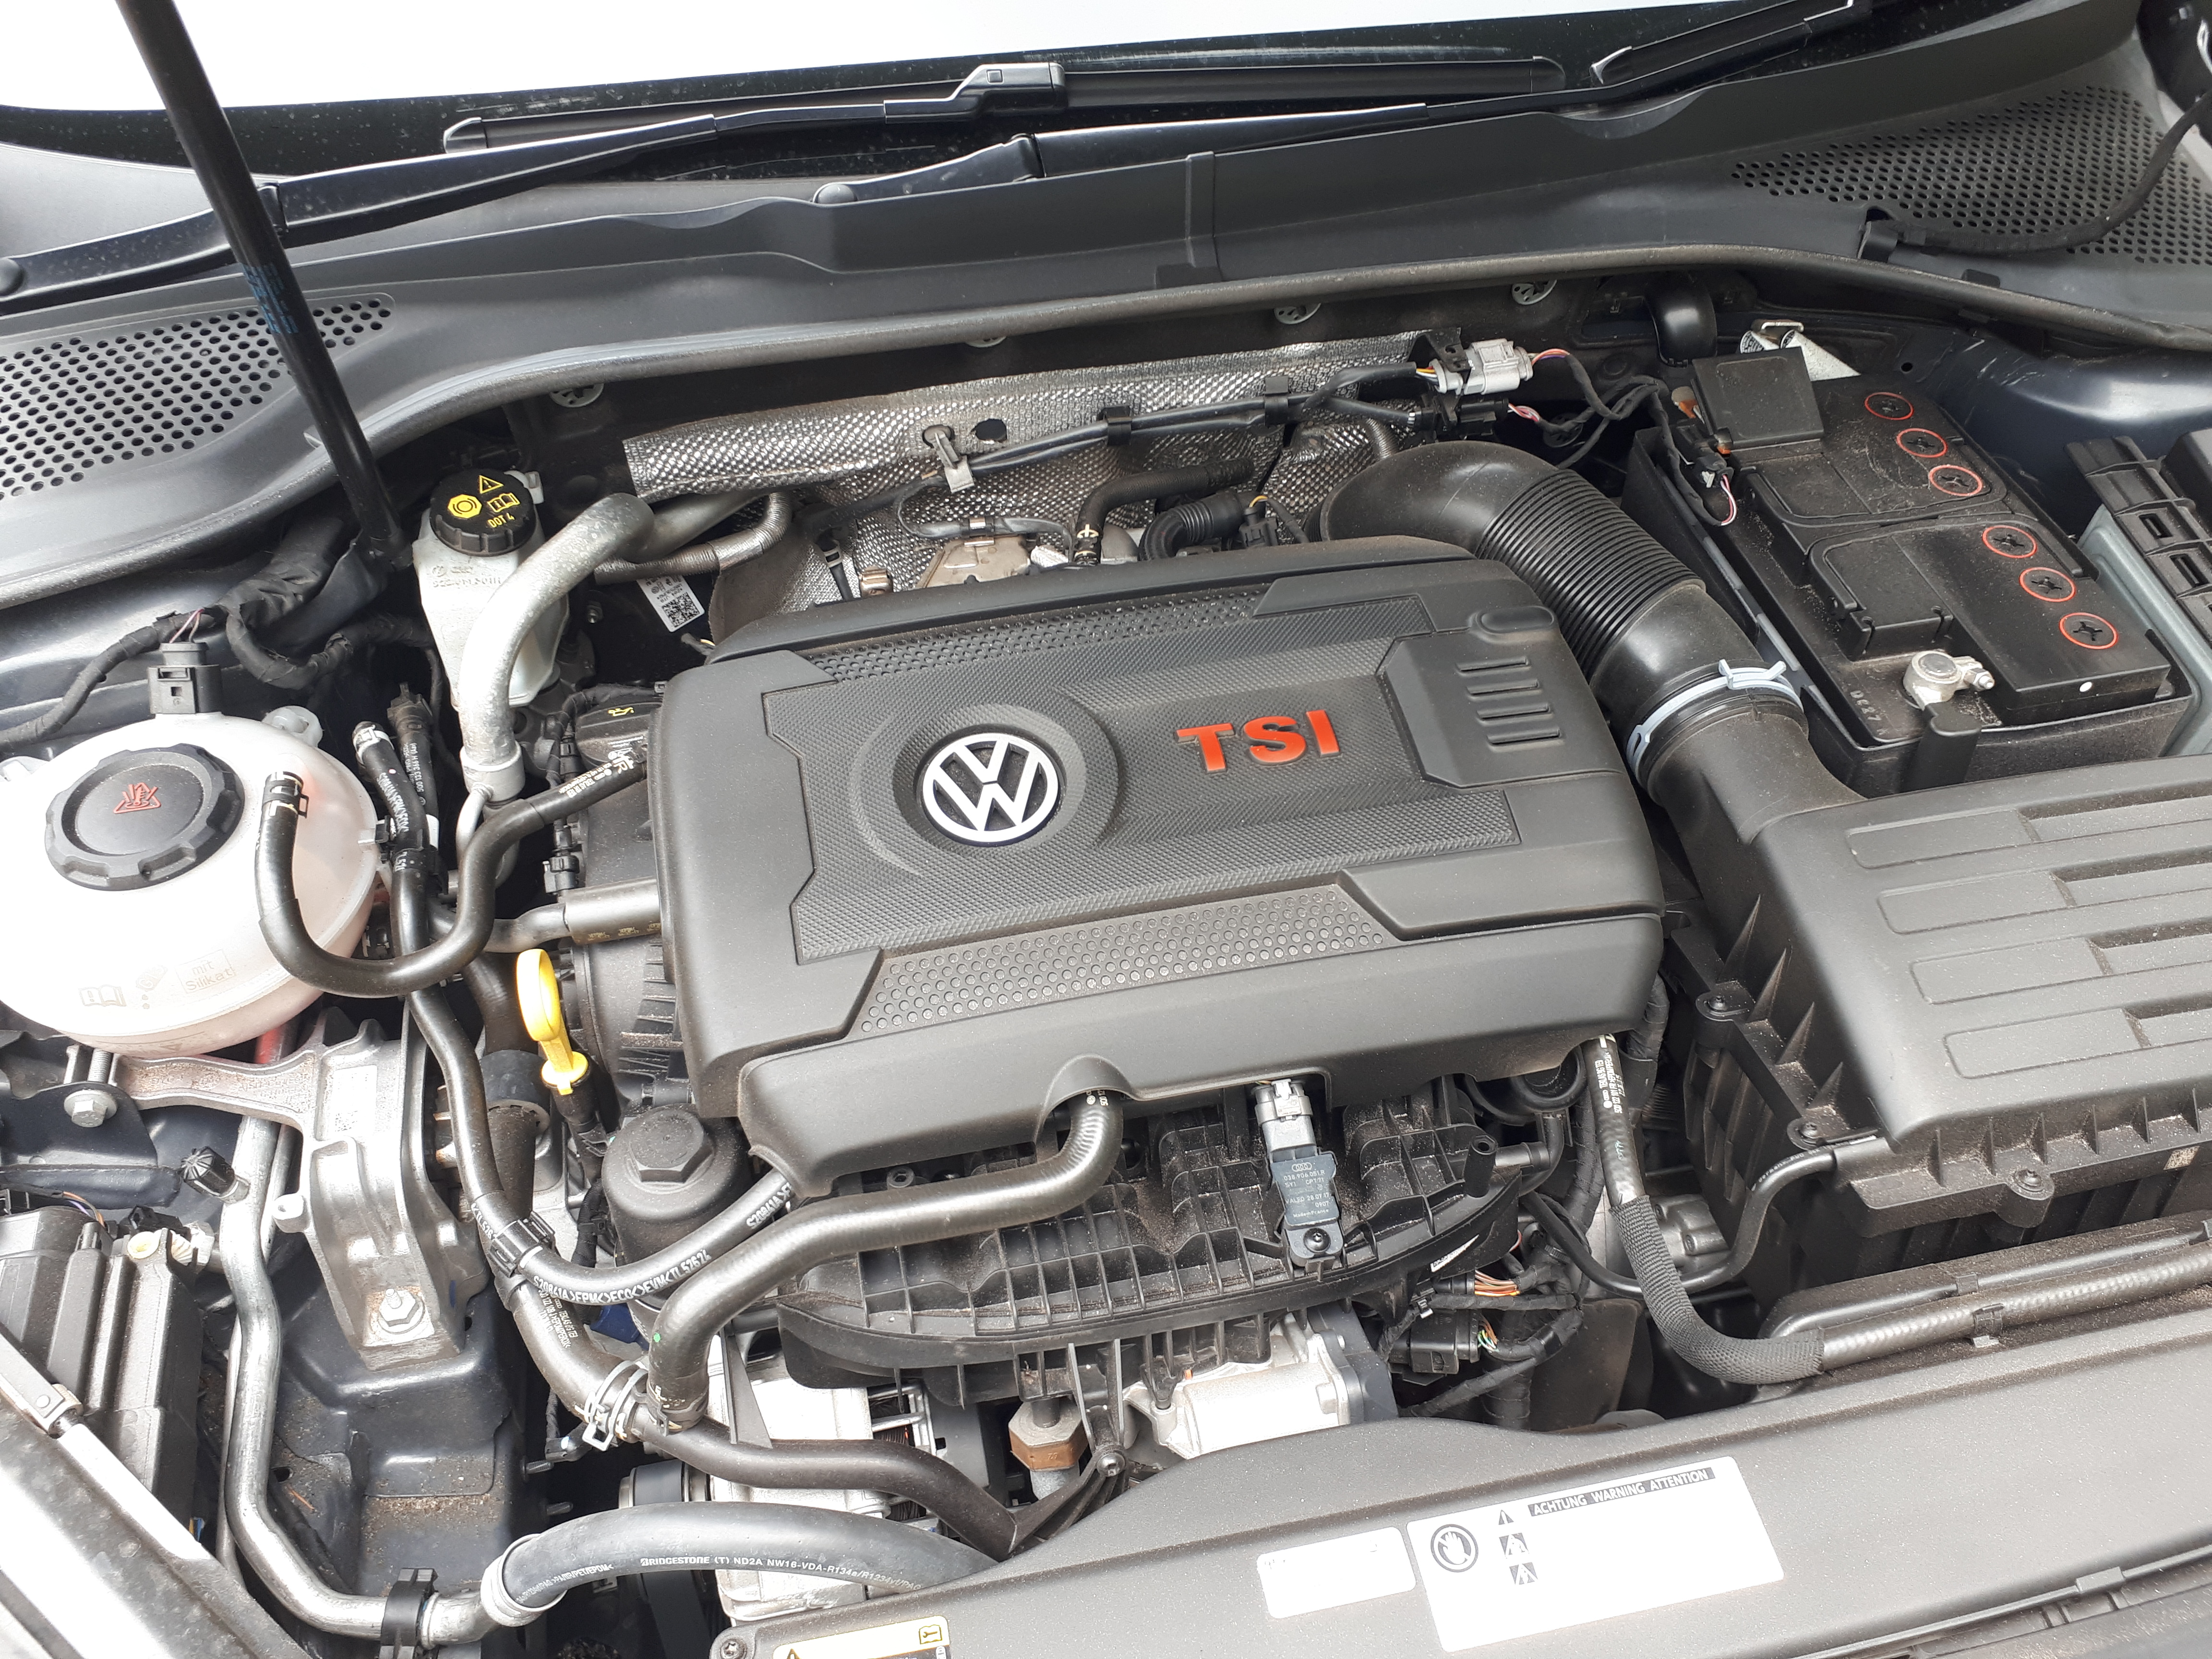 THROWBACK THURSDAY: VW Golf GTi 2 0 TSI Reviewed In 5-Minutes! [+